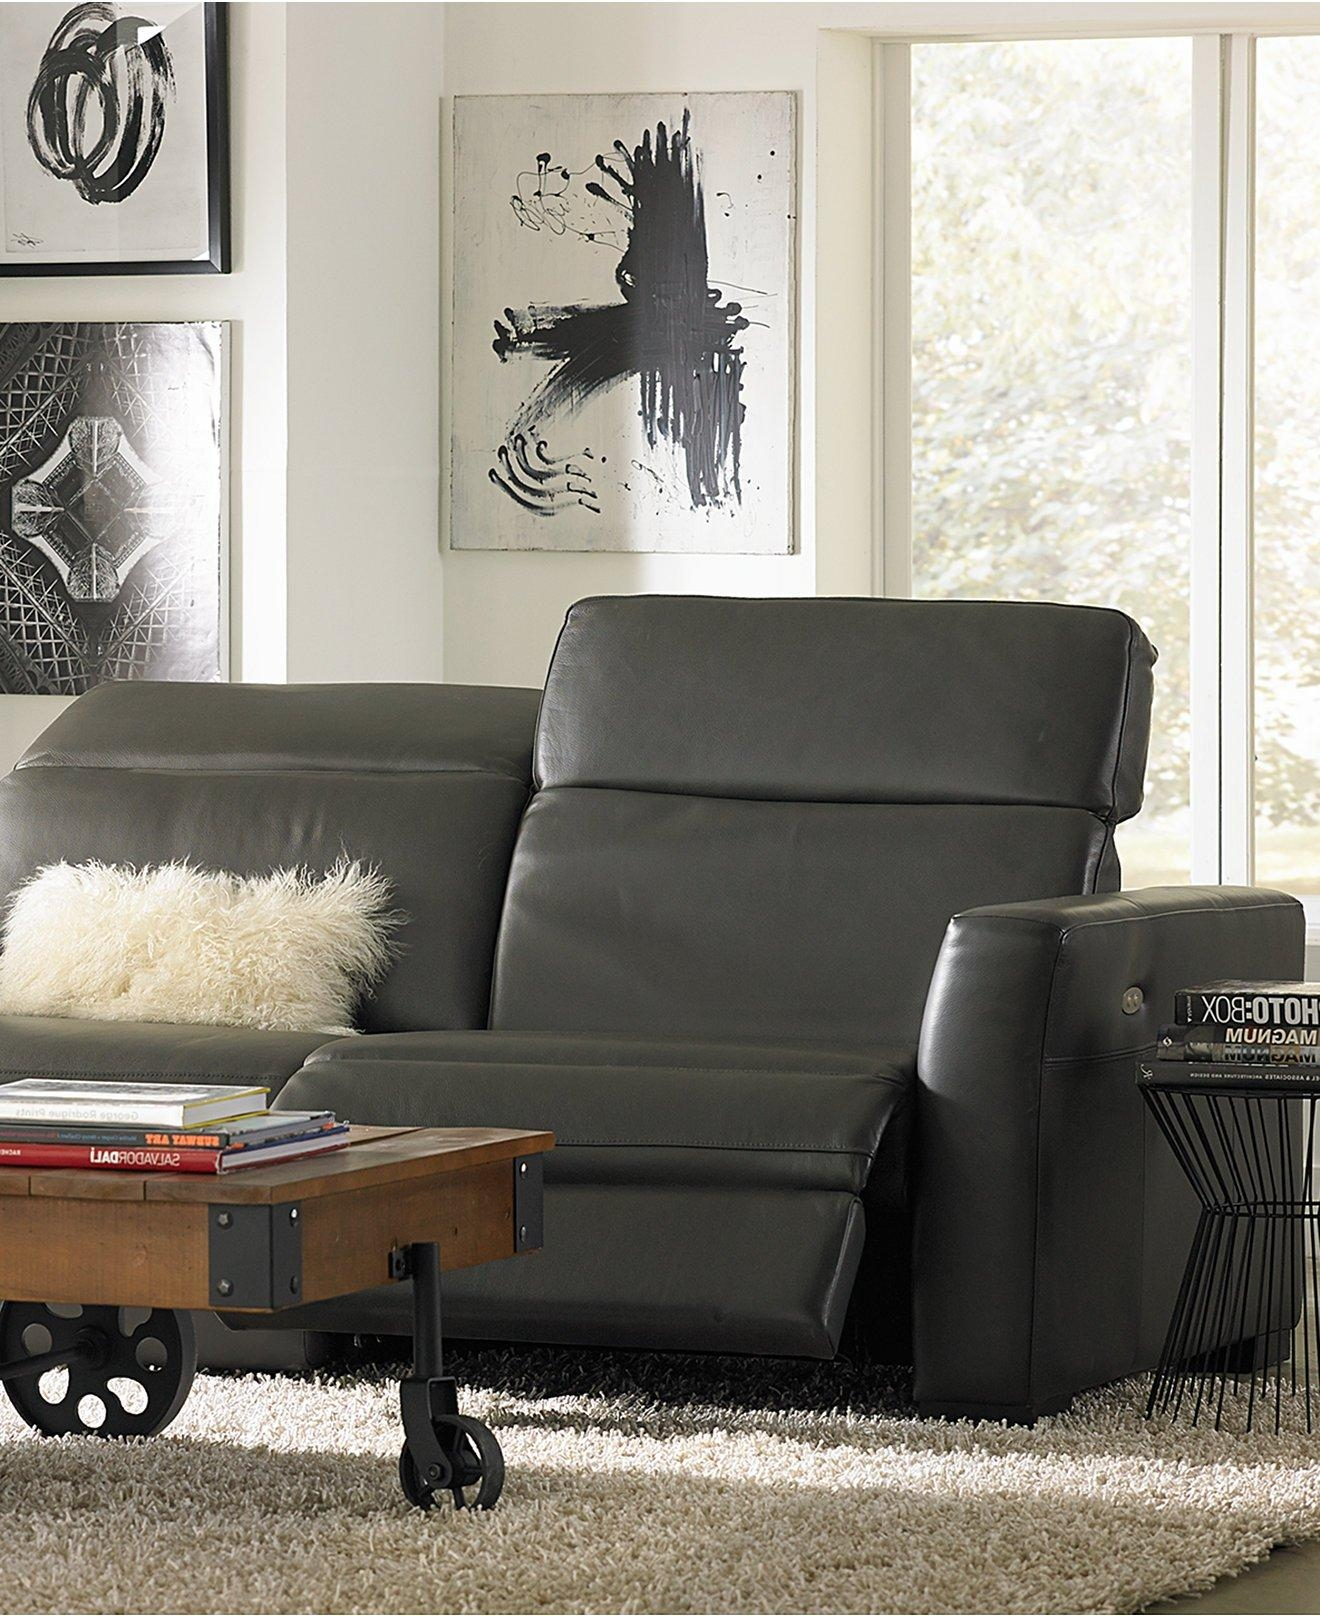 Sofas: Macys Sectional Sofa | Macys Leather Sofas Sectionals For Macys Leather Sofas Sectionals (Image 16 of 20)